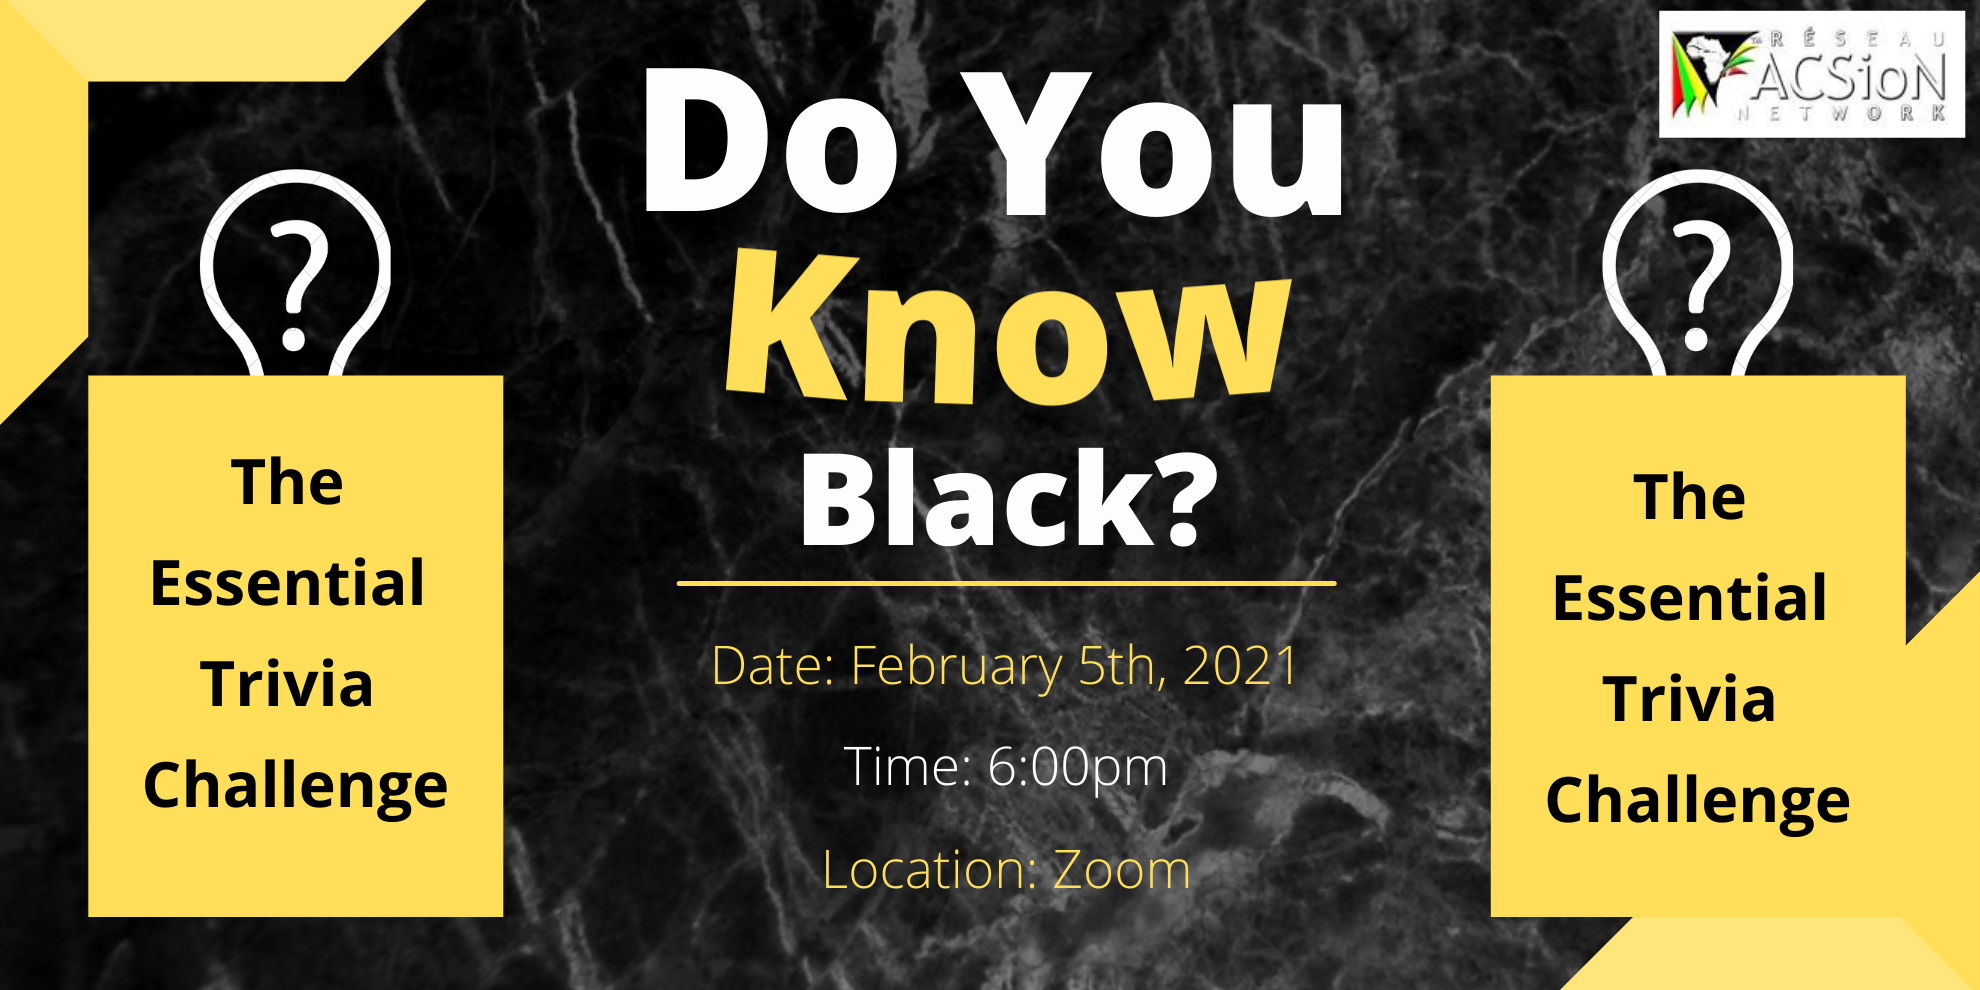 Do you know Black? The Essential Trivia Challenge